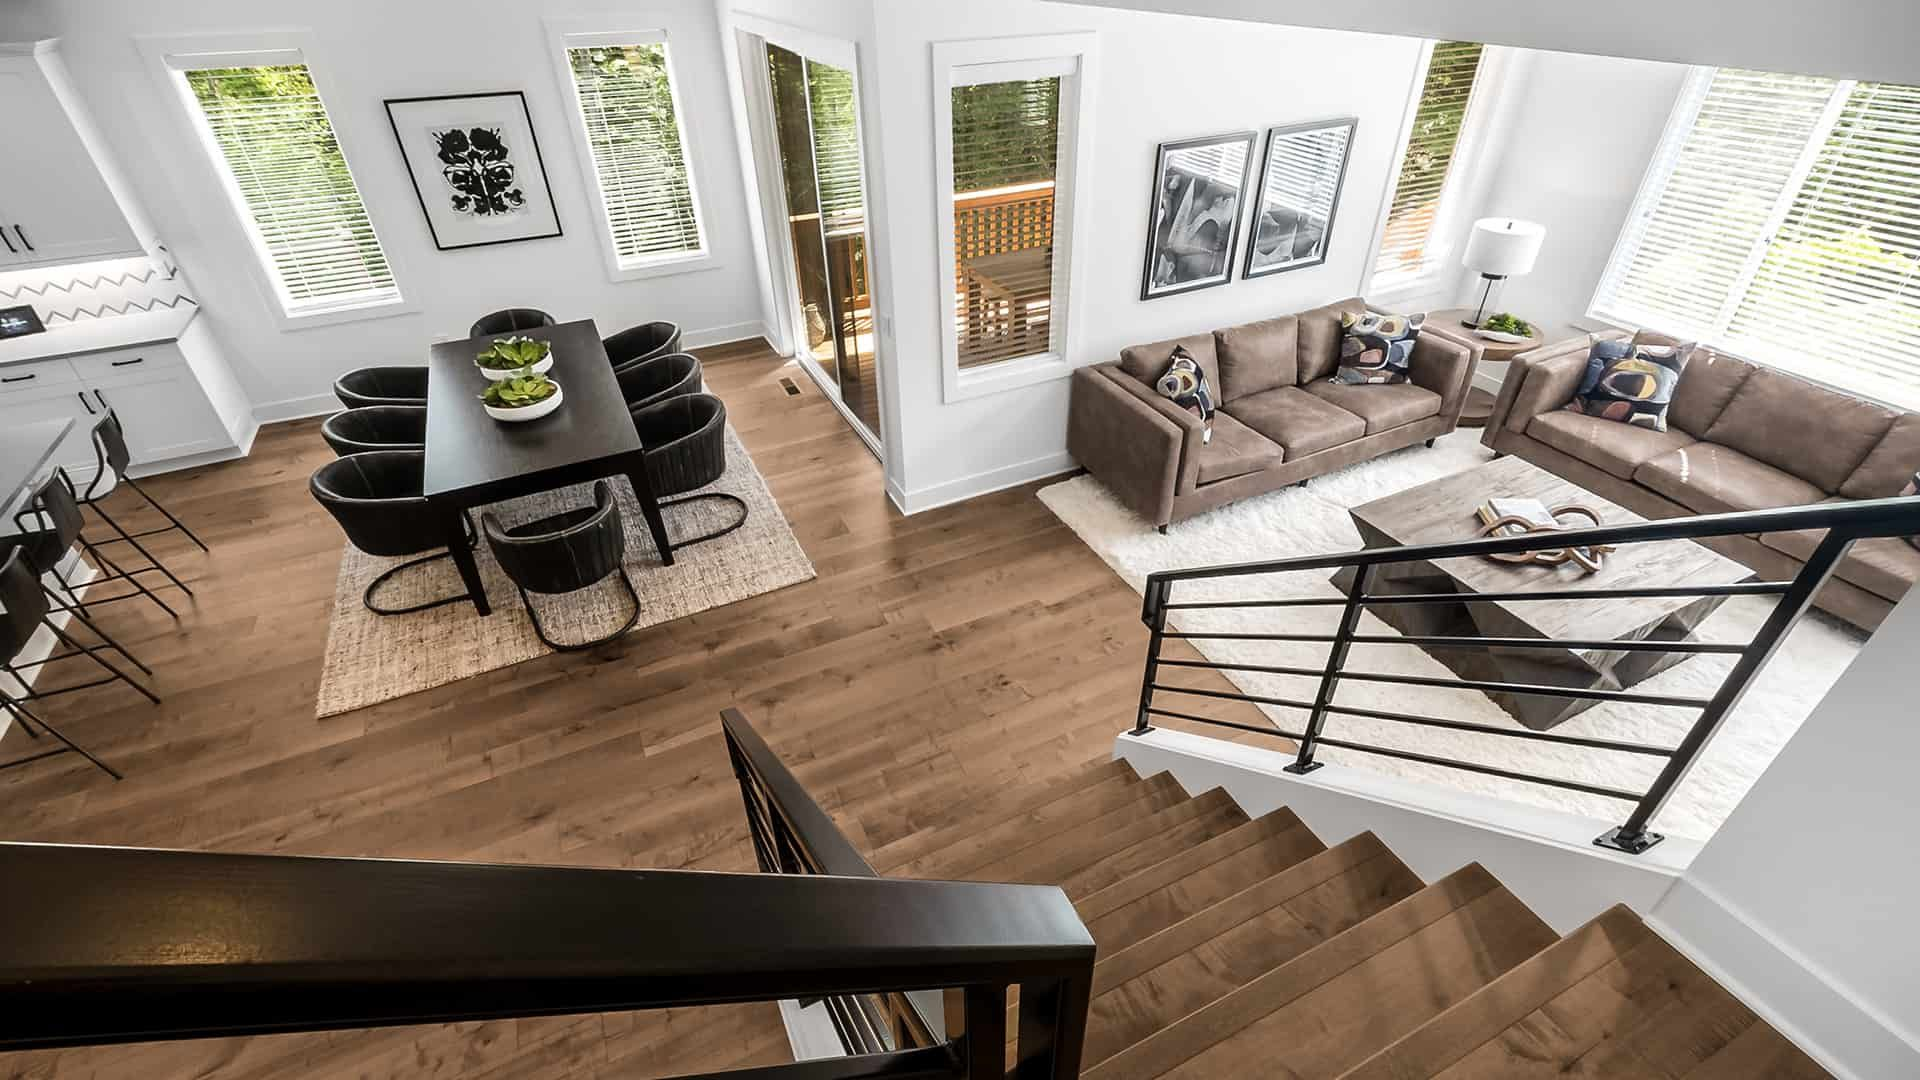 Living Area featured in the Plan H-341DL By Tri Pointe Homes in Seattle-Bellevue, WA